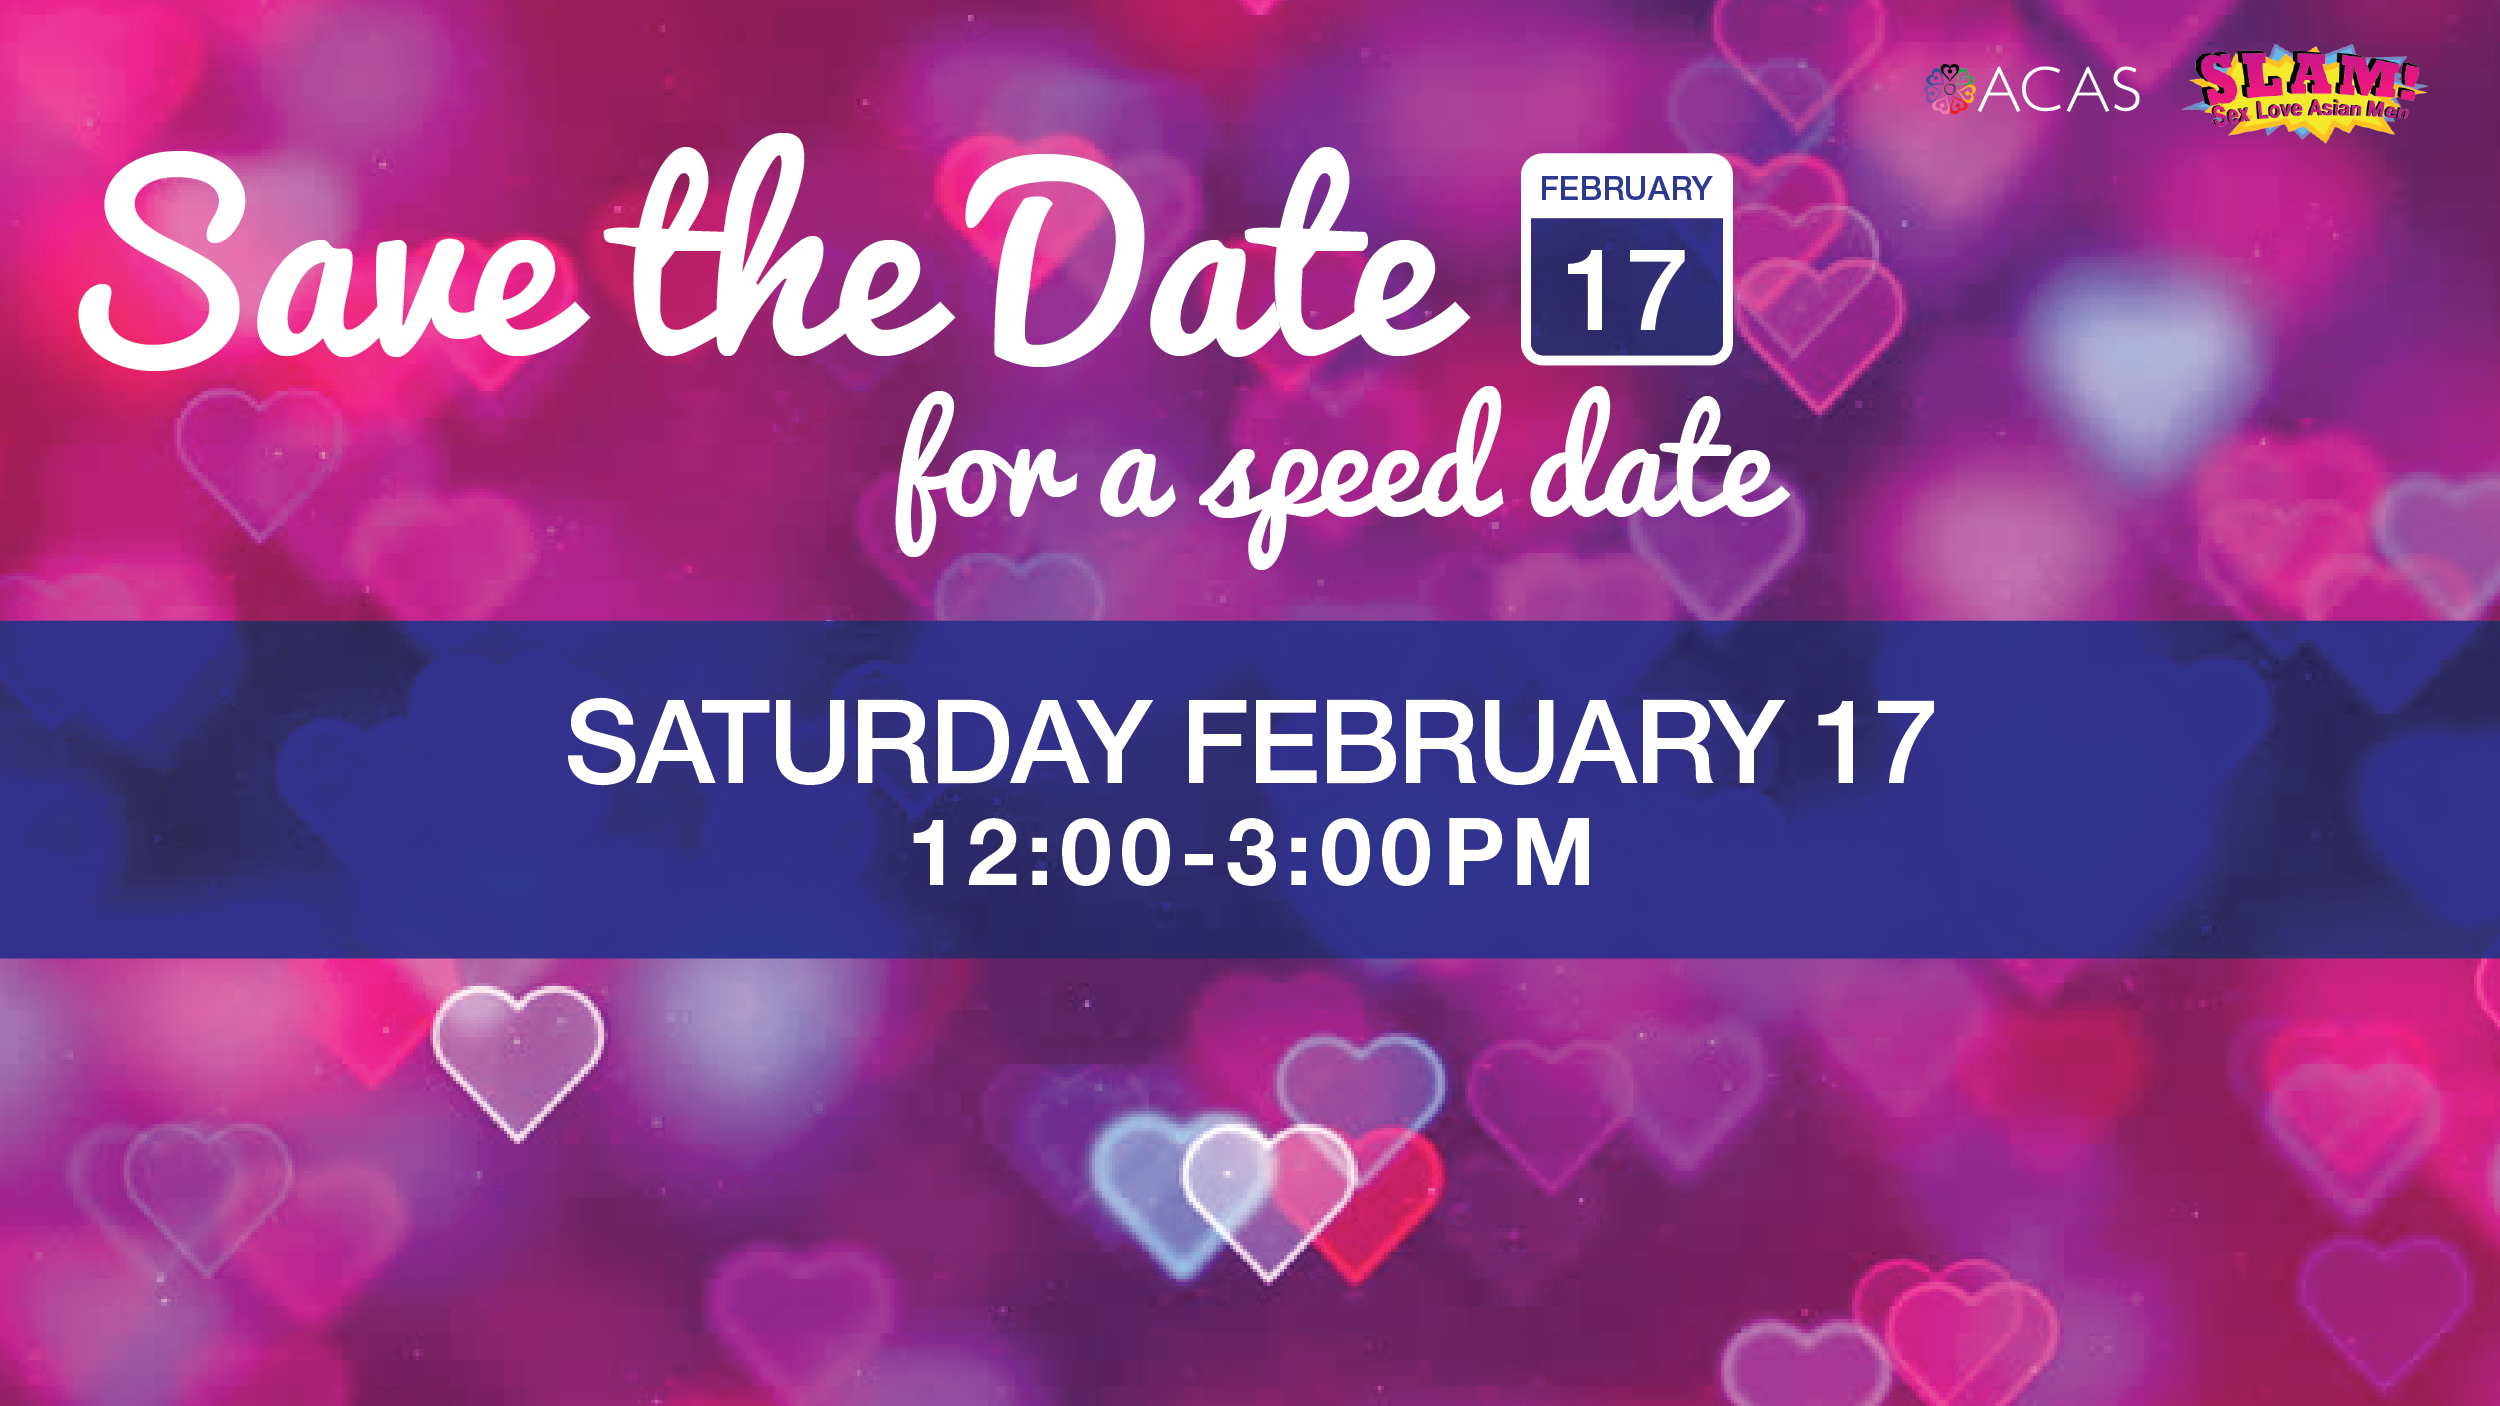 SpeedDating2018 - Save the date